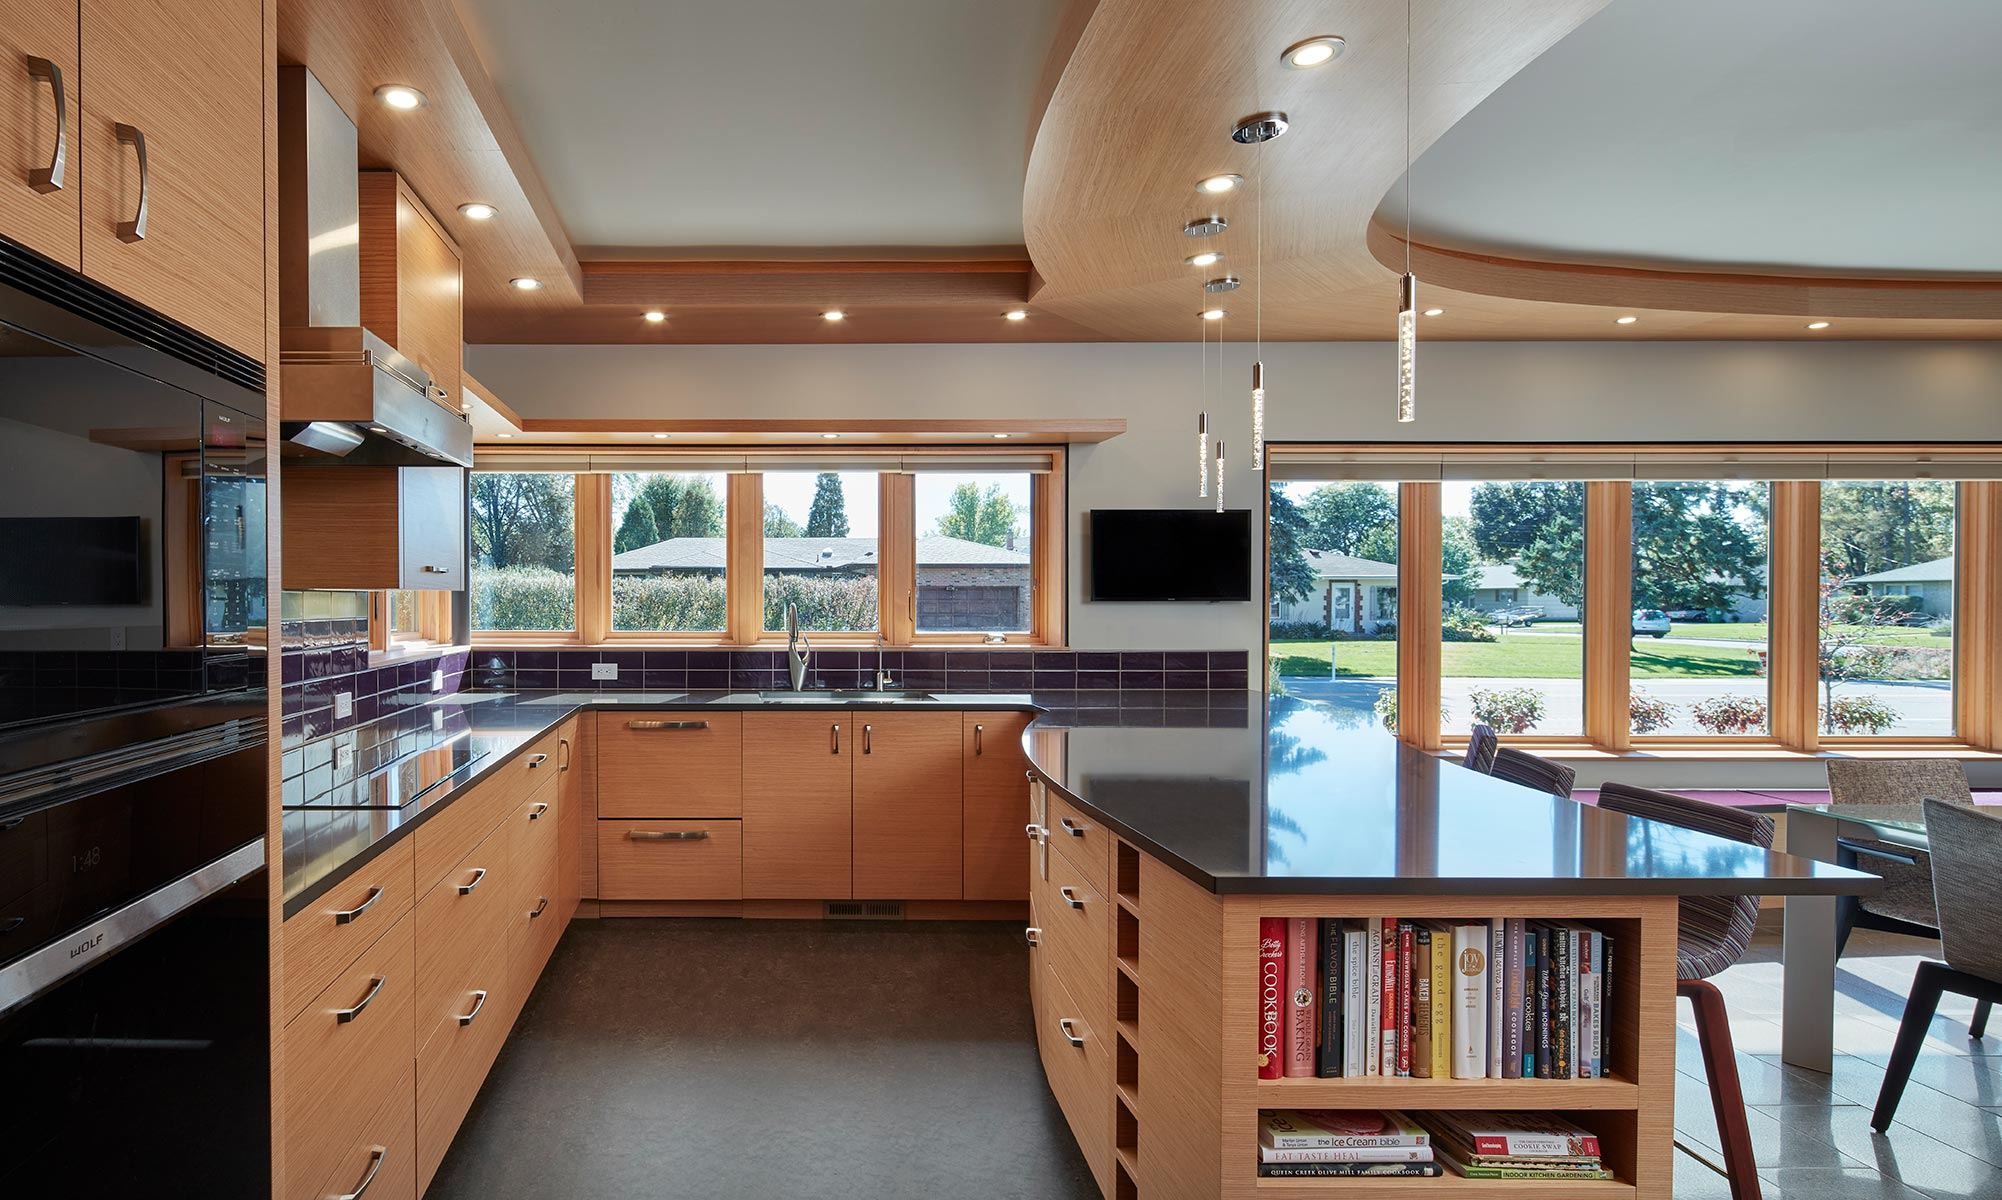 2-sustainable-modern-gourmet-kitchen-minneapolis-interior-designer.jpg